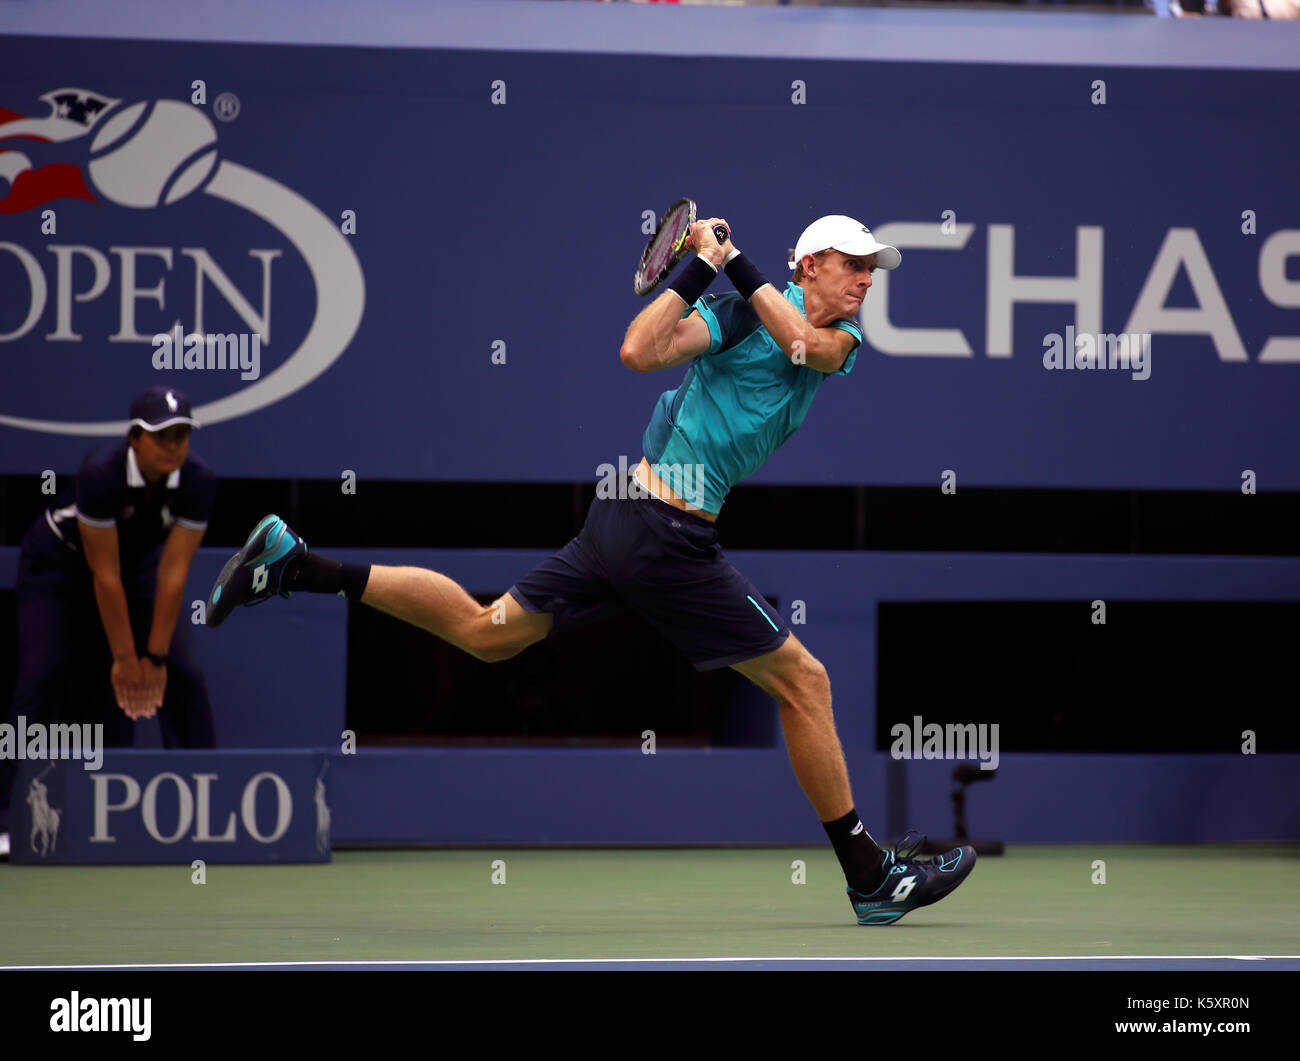 New York, United States. 10th Sep, 2017. US Open Tennis: New York, 10 September, 2017 - Kevin Anderson of South Africa follows through on a backhand return to Rafael Nadal of Spain during the US Open Men's singles final in Flushing Meadows, New York. Nadal won the match in three sets to win the title Credit: Adam Stoltman/Alamy Live News - Stock Image